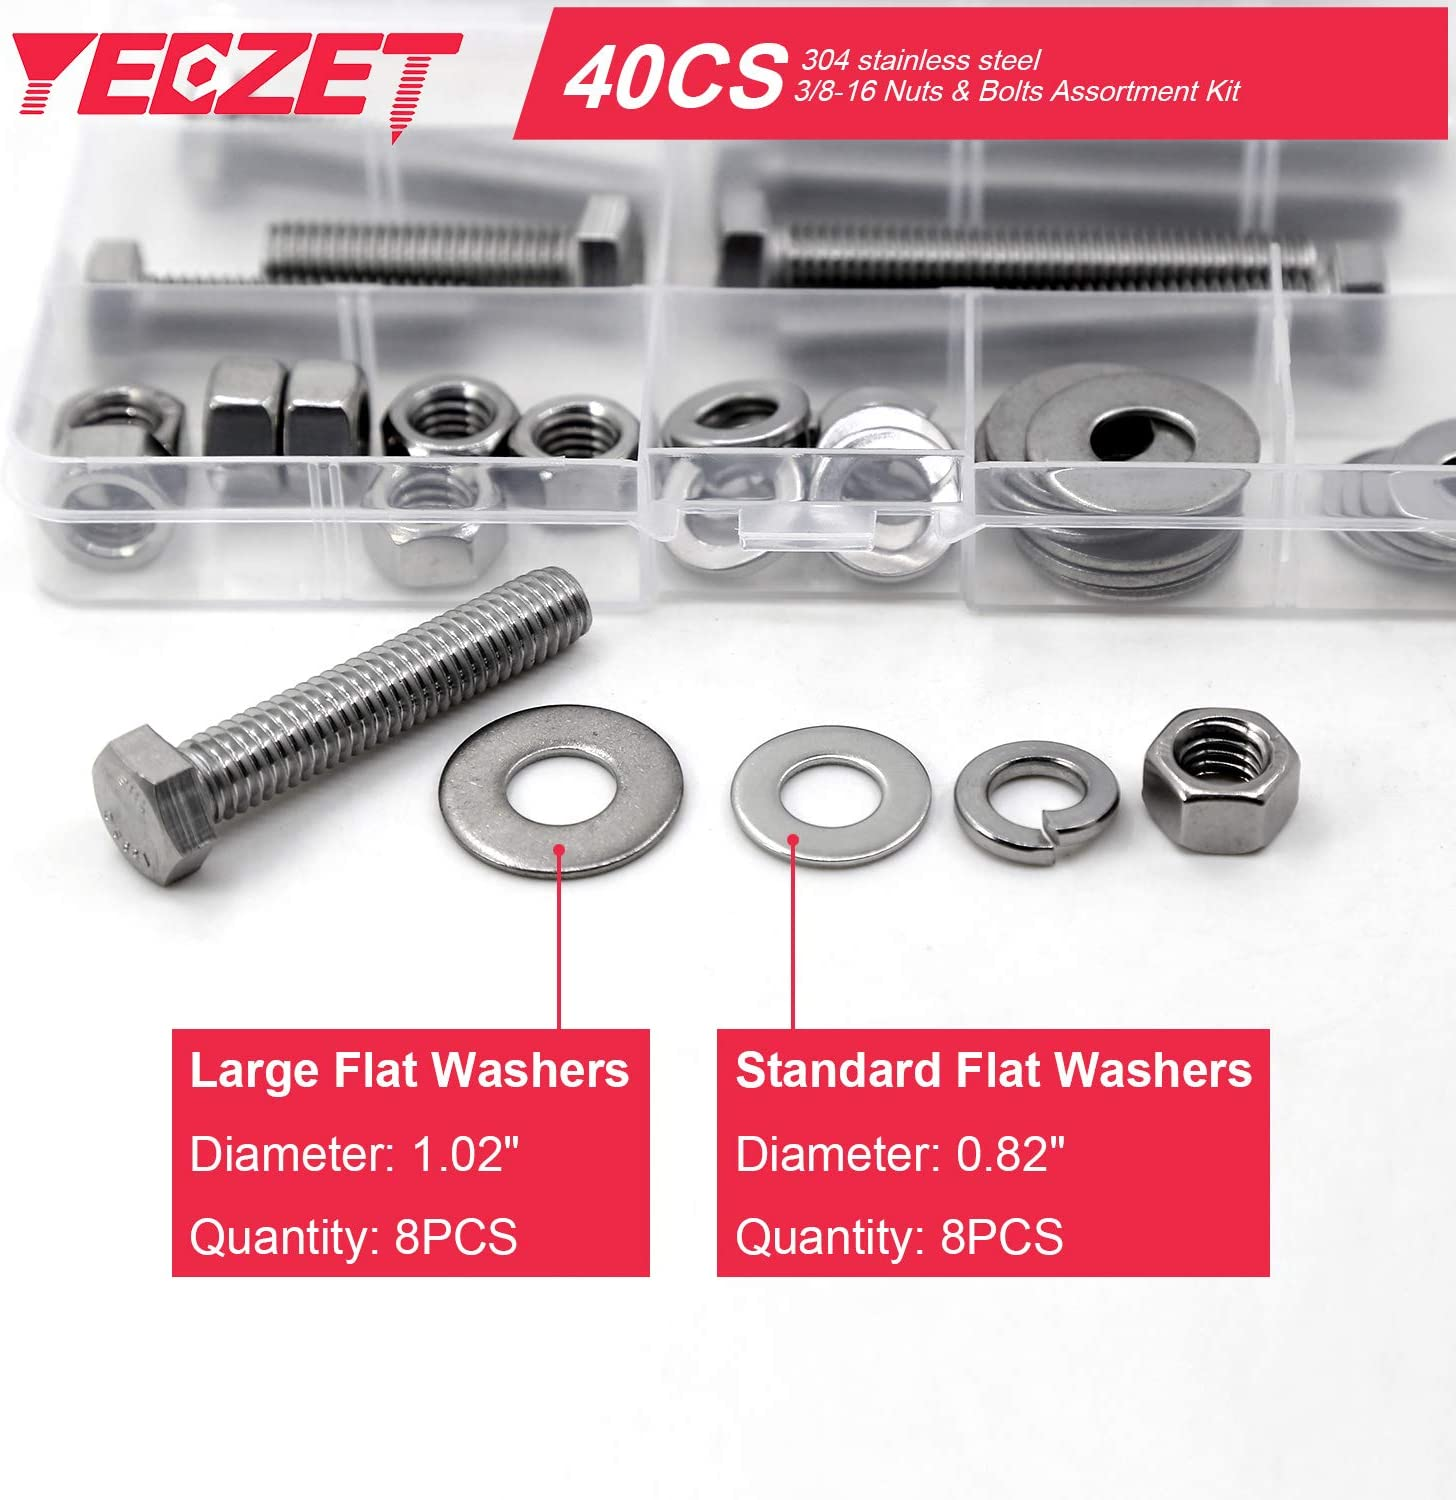 1000Pcs//Lot Stainless Steel Screws Bolts With Hex Nuts Washers Assortment Kit US